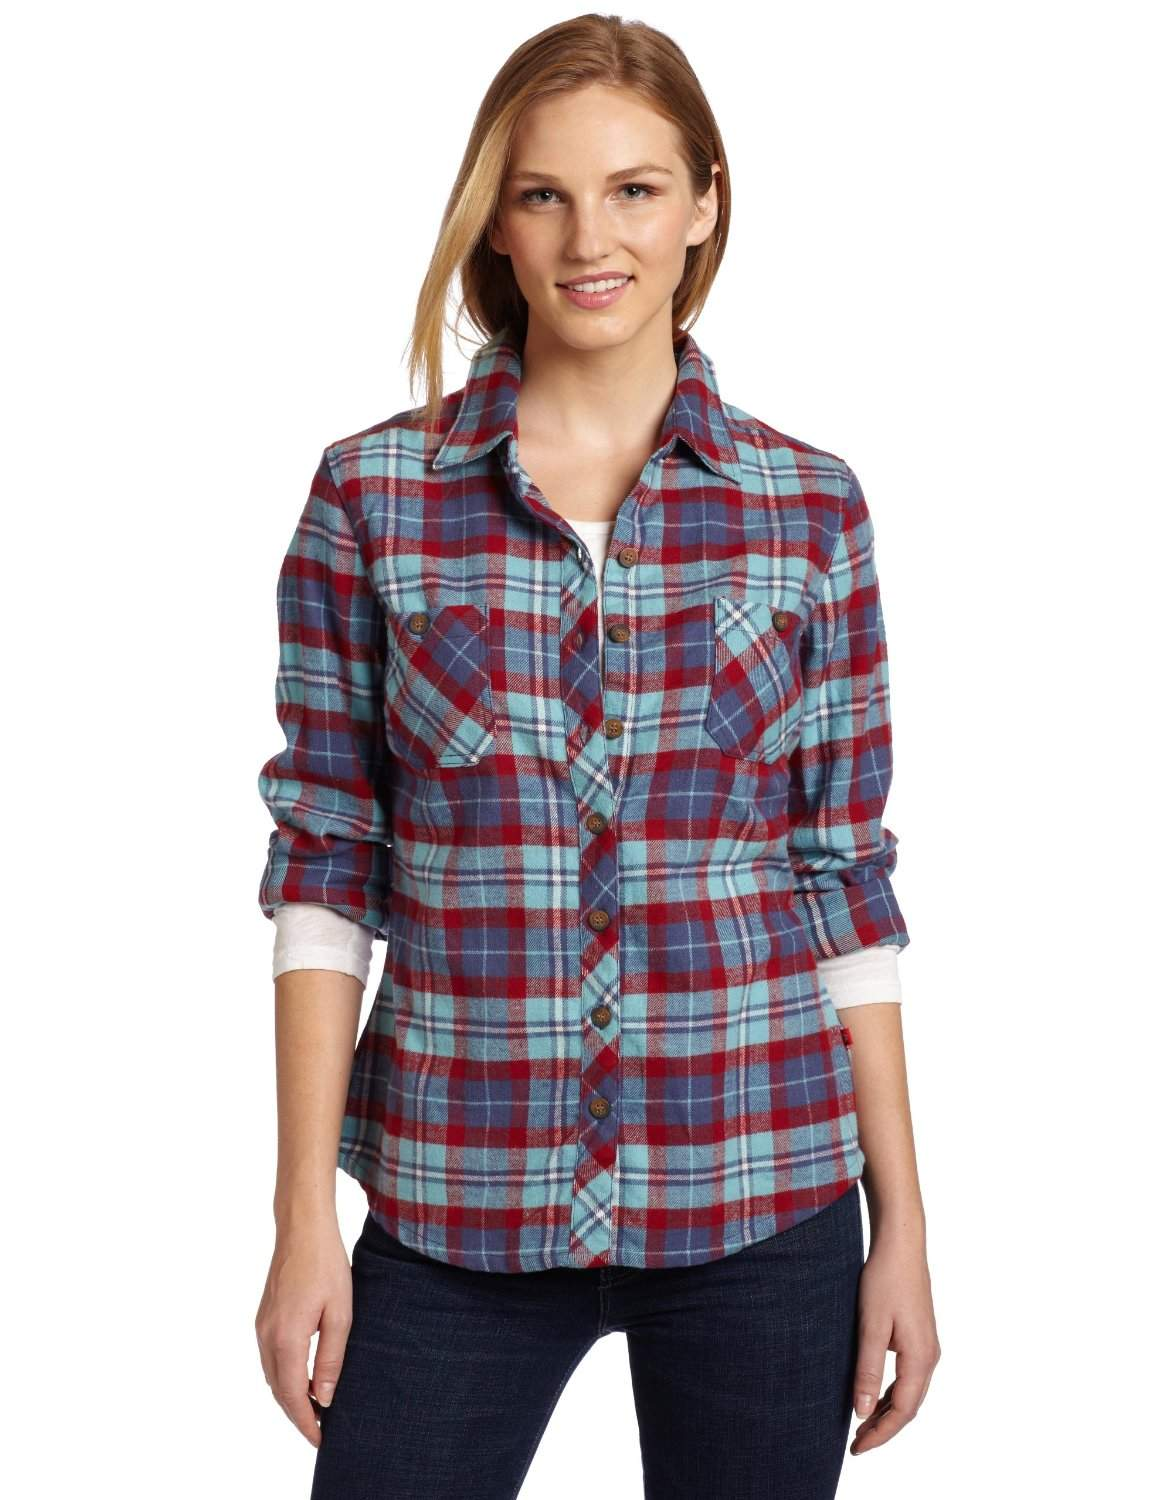 Bend, reach and stretch as you please with our Free Swinging flannel shirts for women. Our women's flannel shirts are packed with comfort and features. Free Shipping on Orders Over $ Free Shipping on your order of $50 or more. $50 minimum order requirement applies to the order total before taxes, shipping, gift packaging, and gift cards.